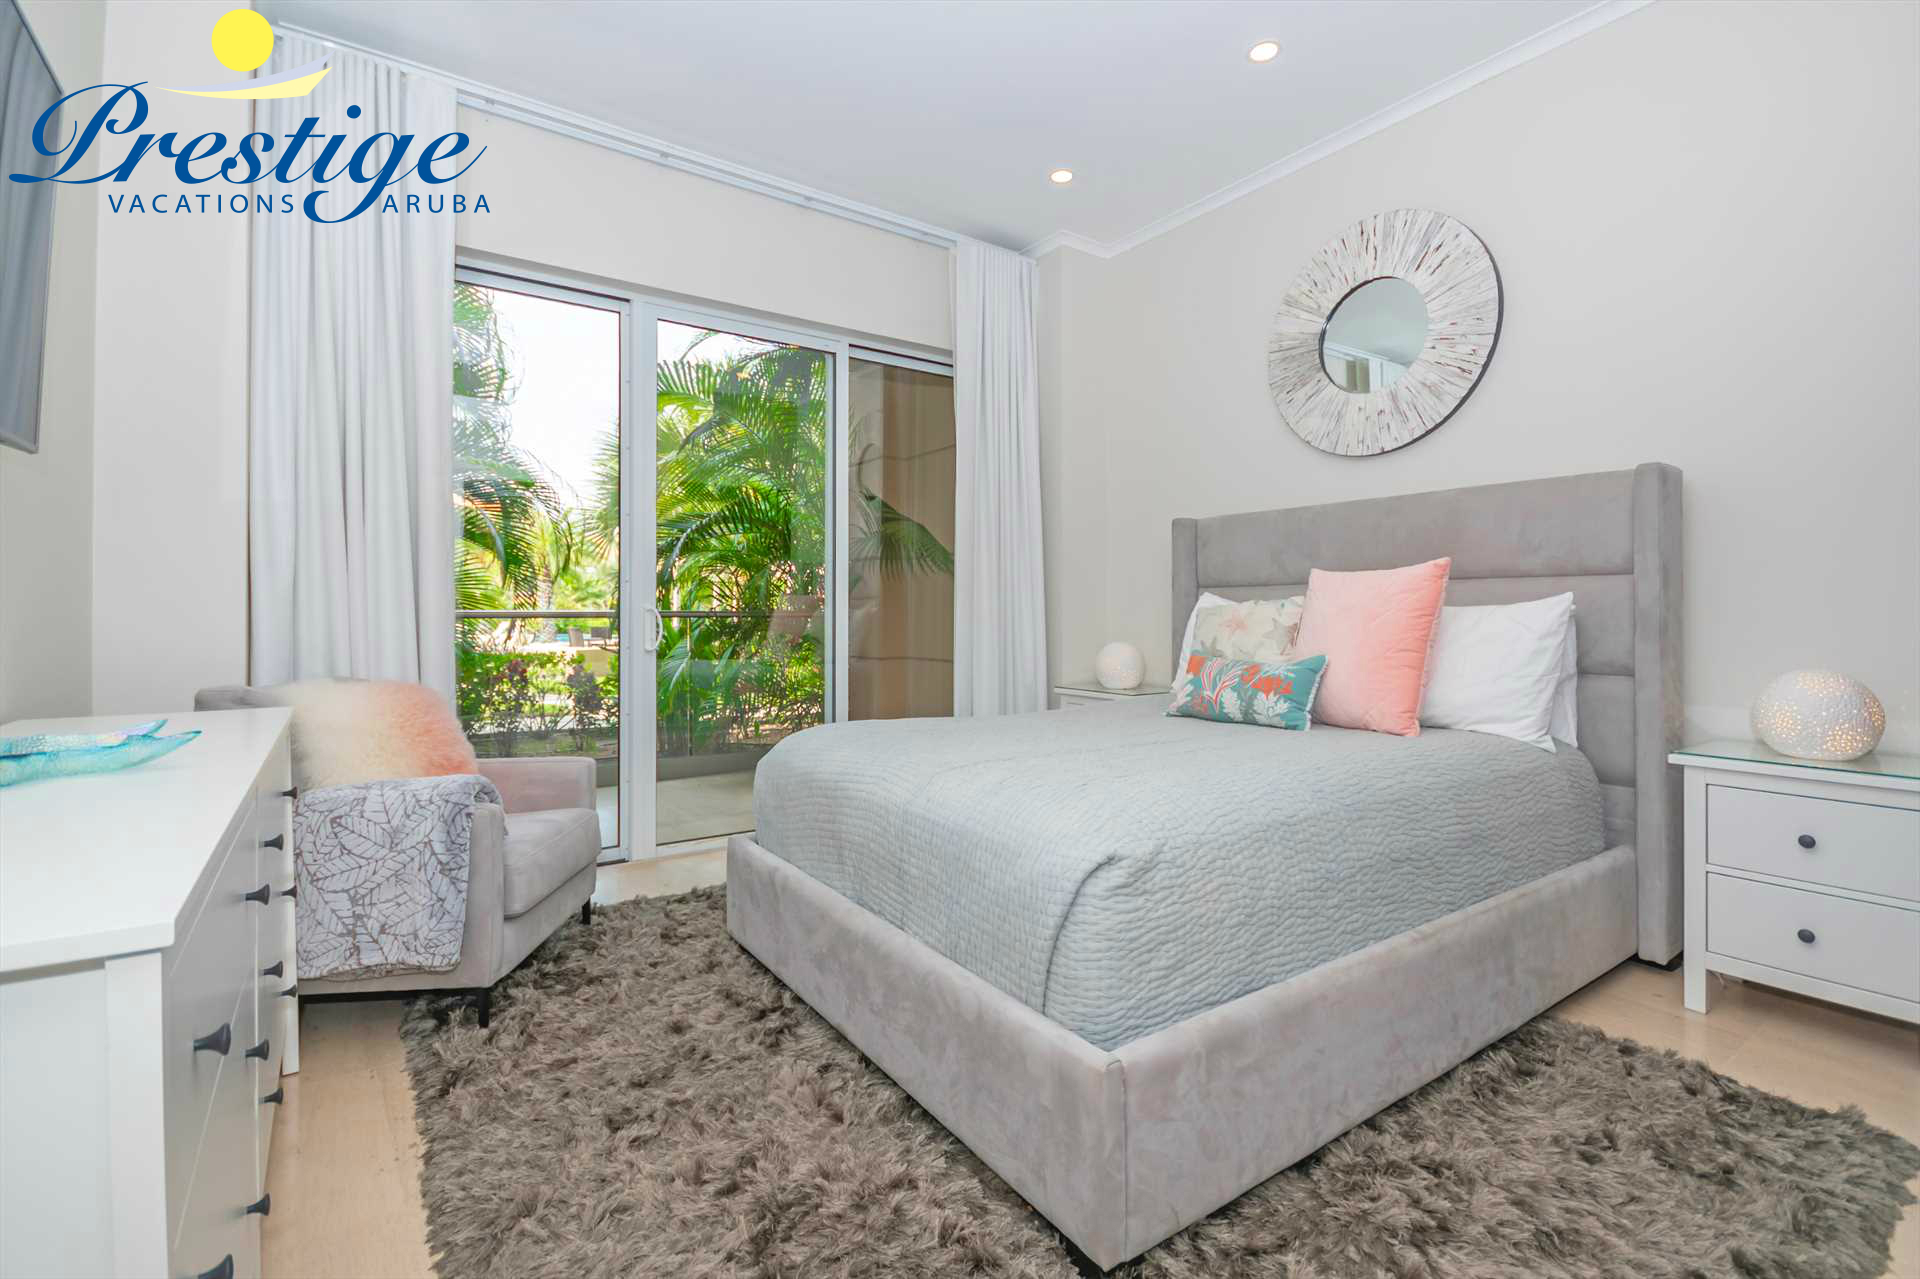 Second bedroom with queen-size bed and access to the veranda